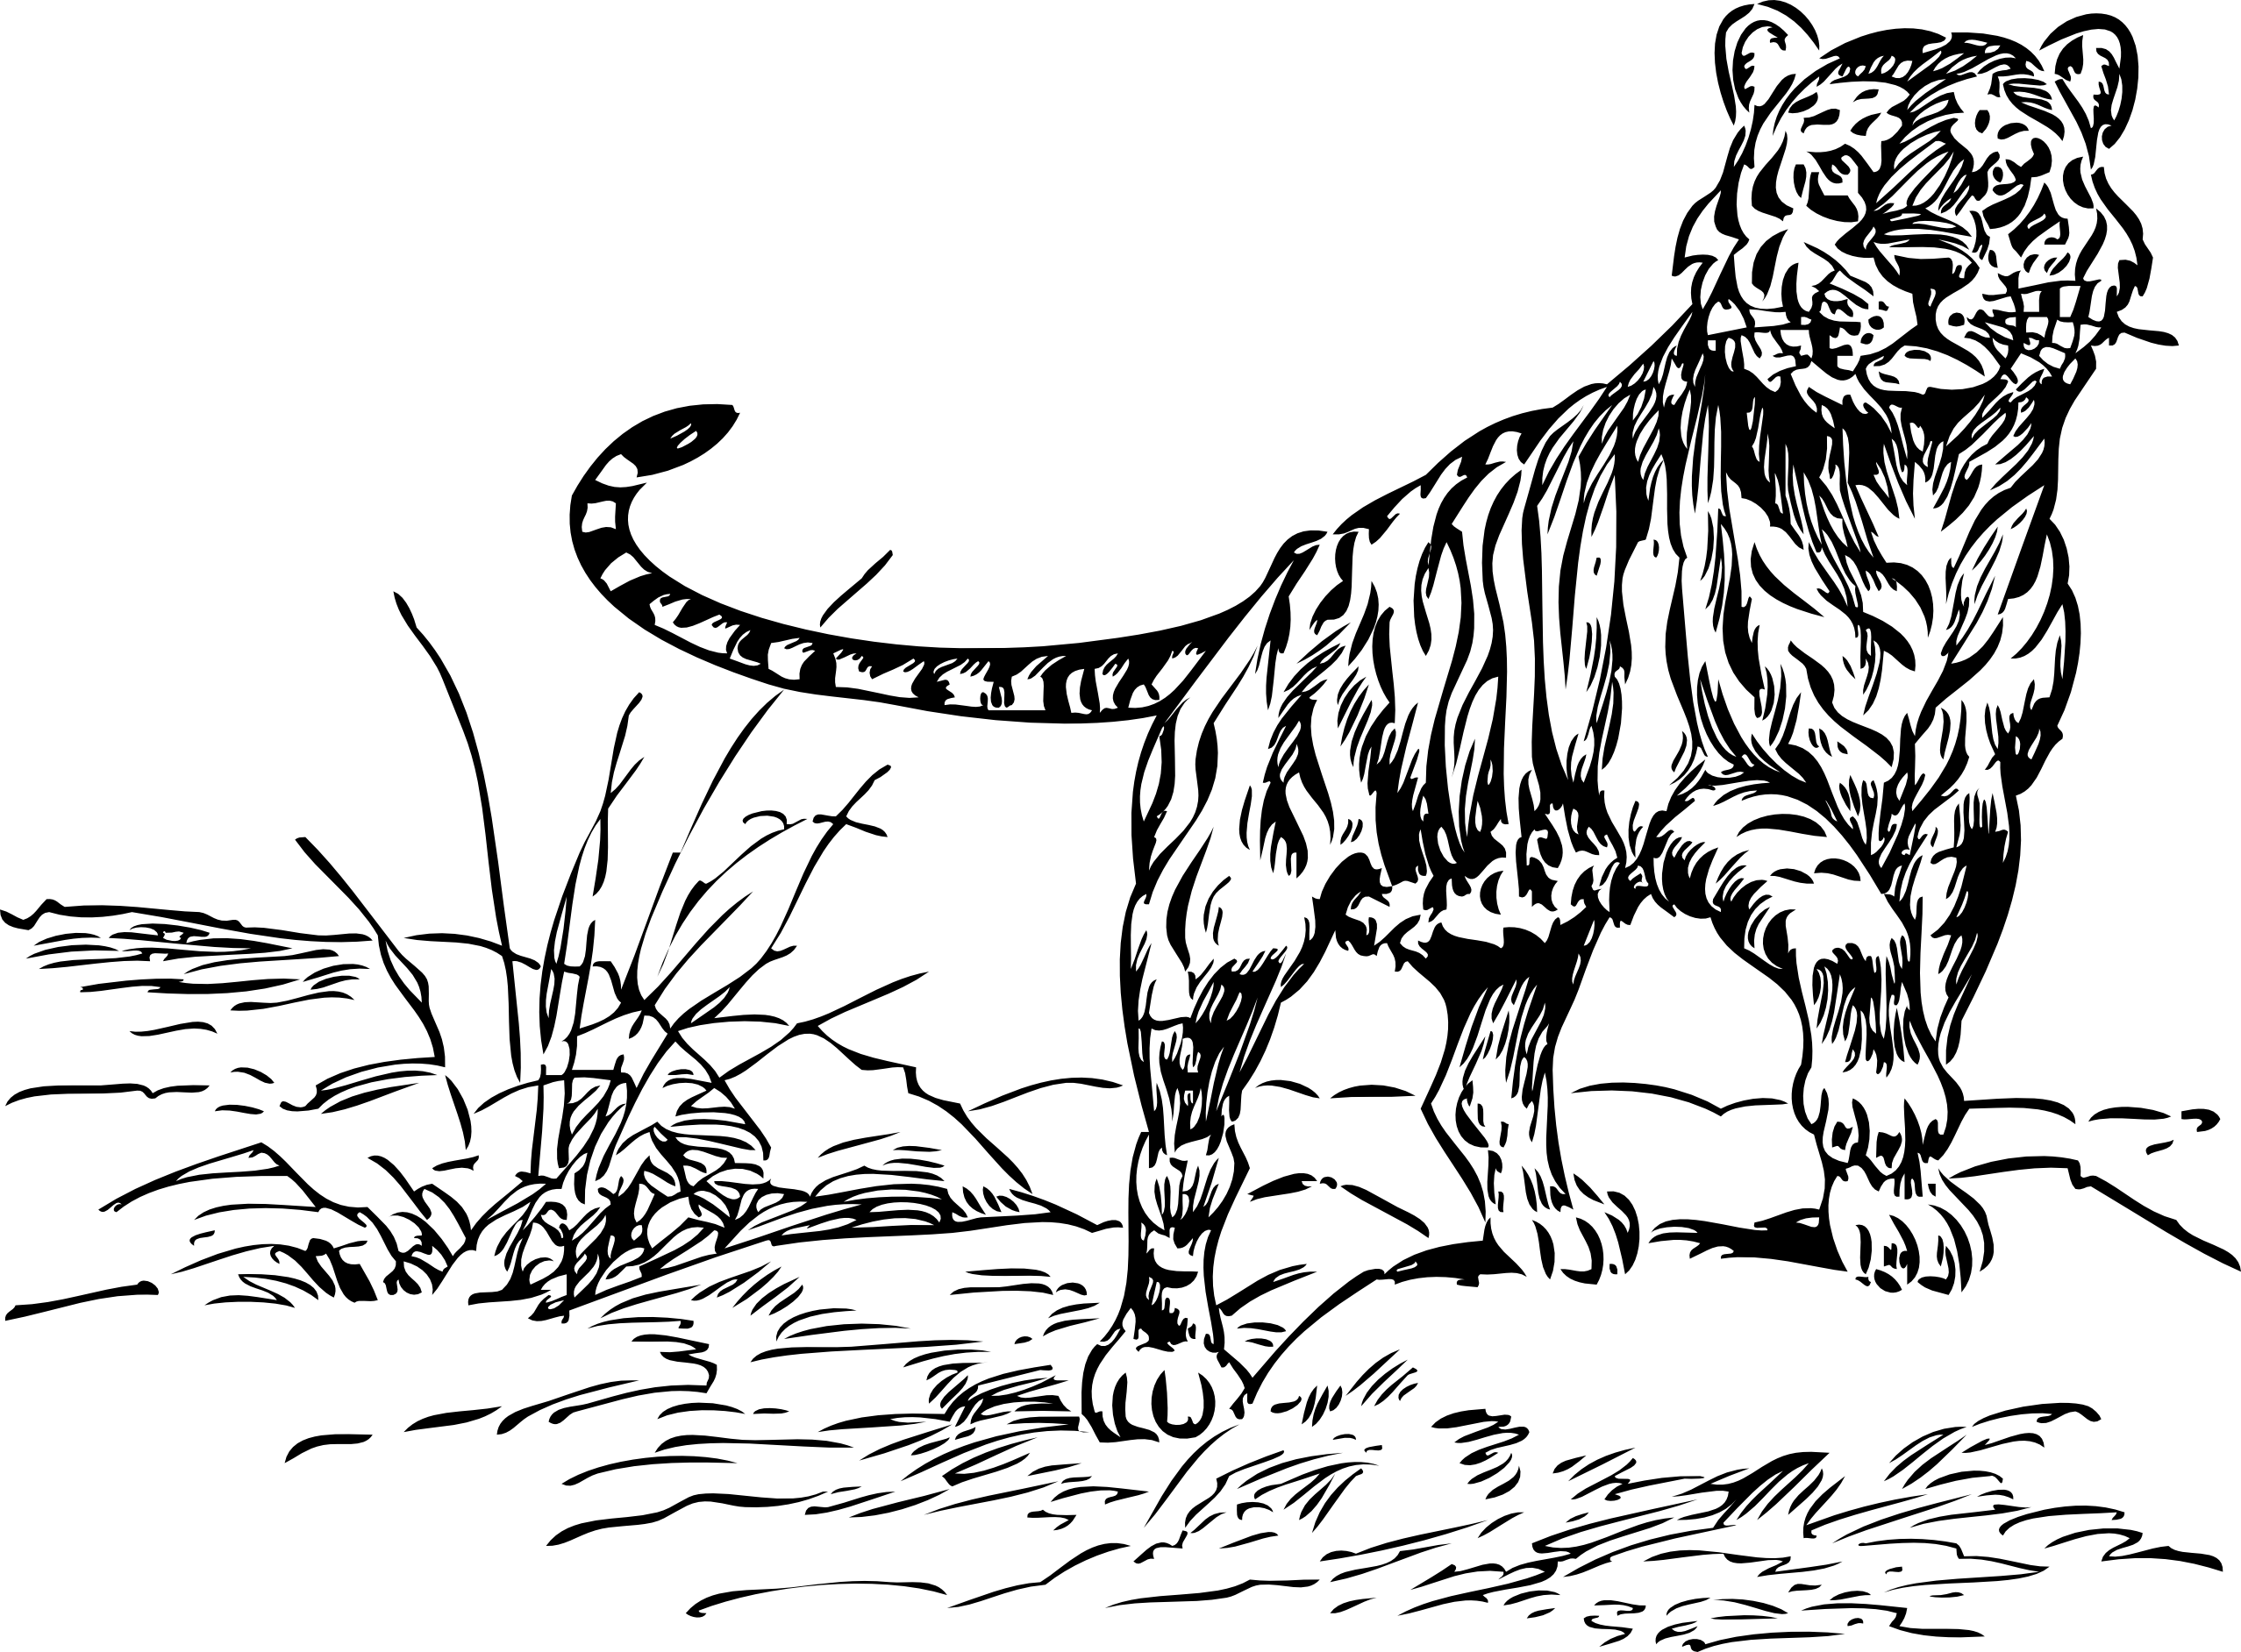 Line Art Tiger : Tiger line drawing clipart best